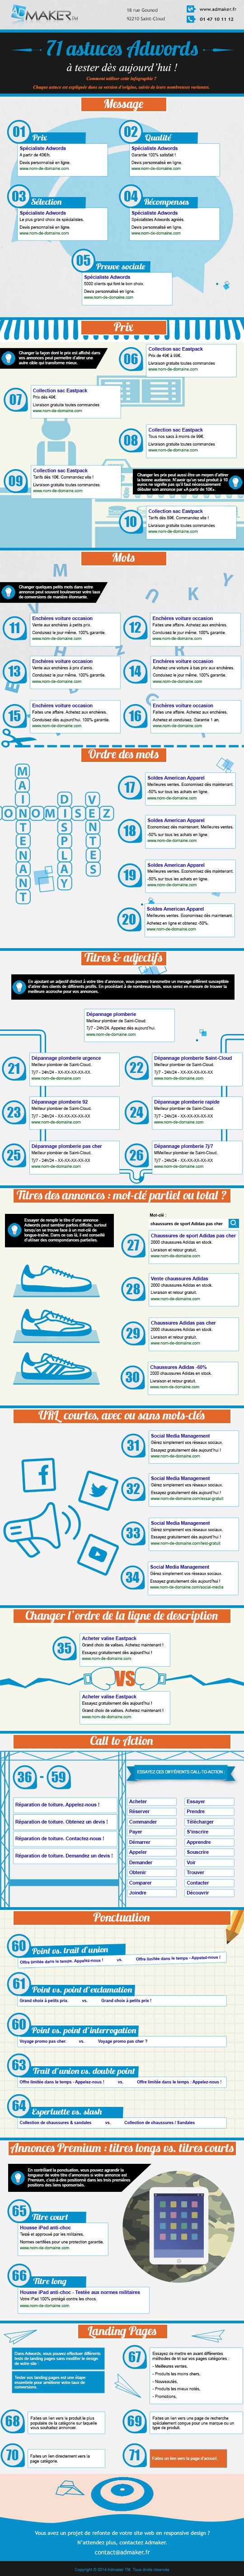 Infographie astuces Adwords